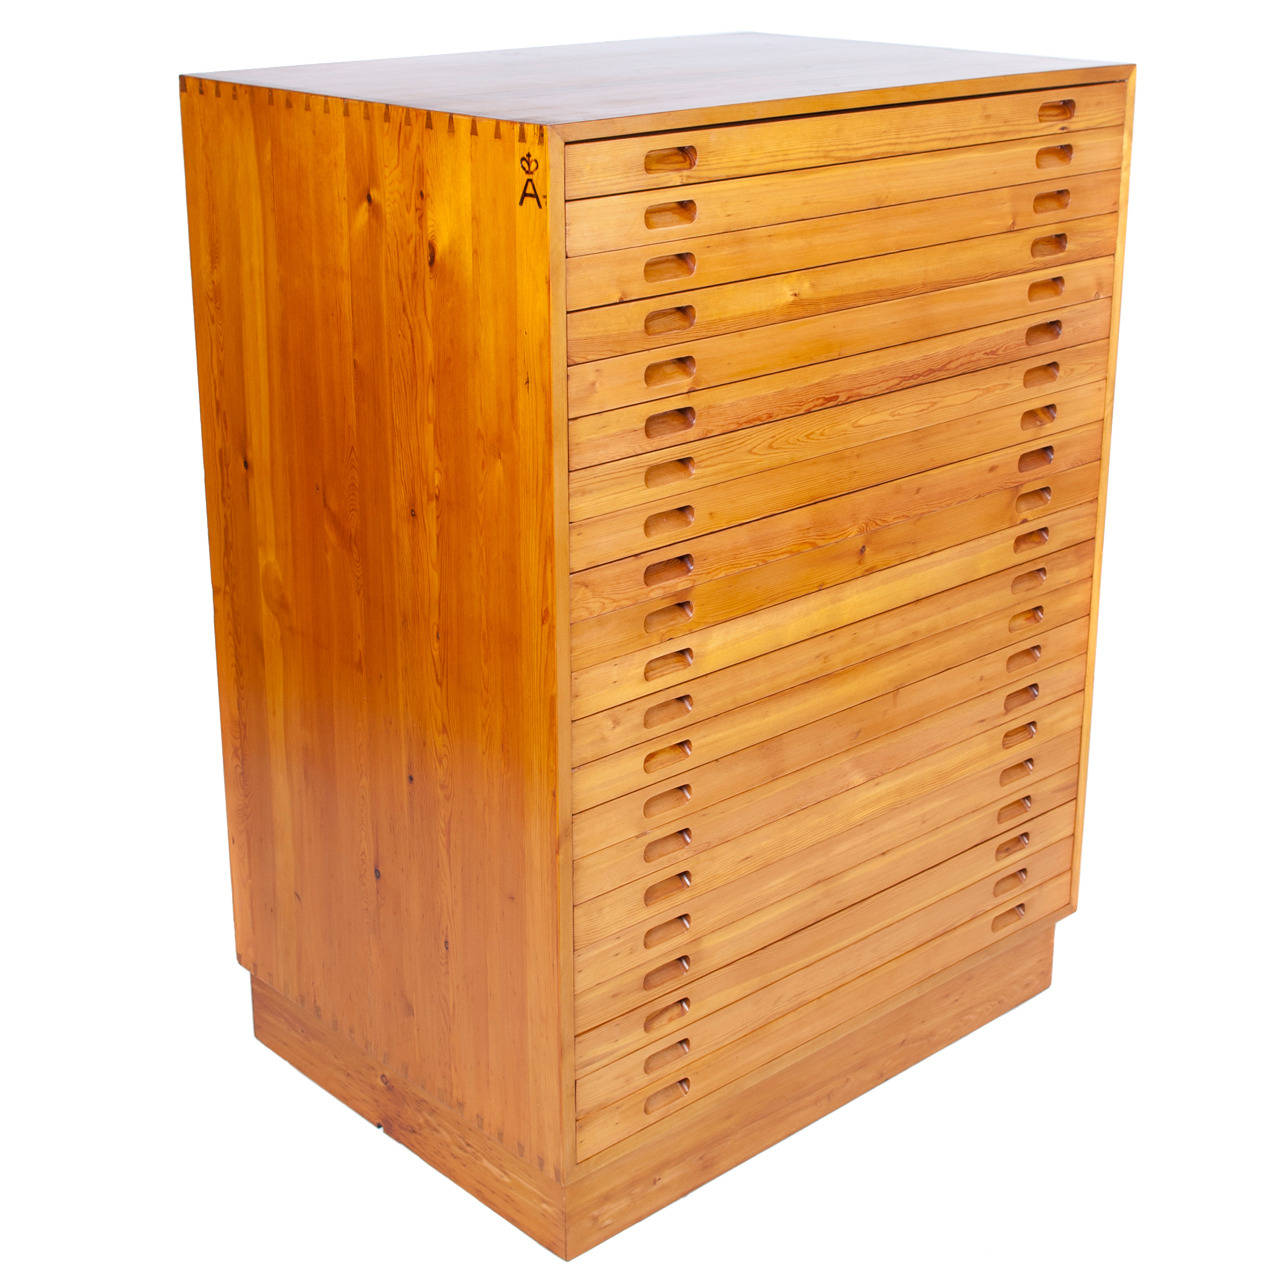 Picture of: Very Goods Kaare Klint Flat File Cabinet Made By Rud Rasmussen For Sale At 1stdibs